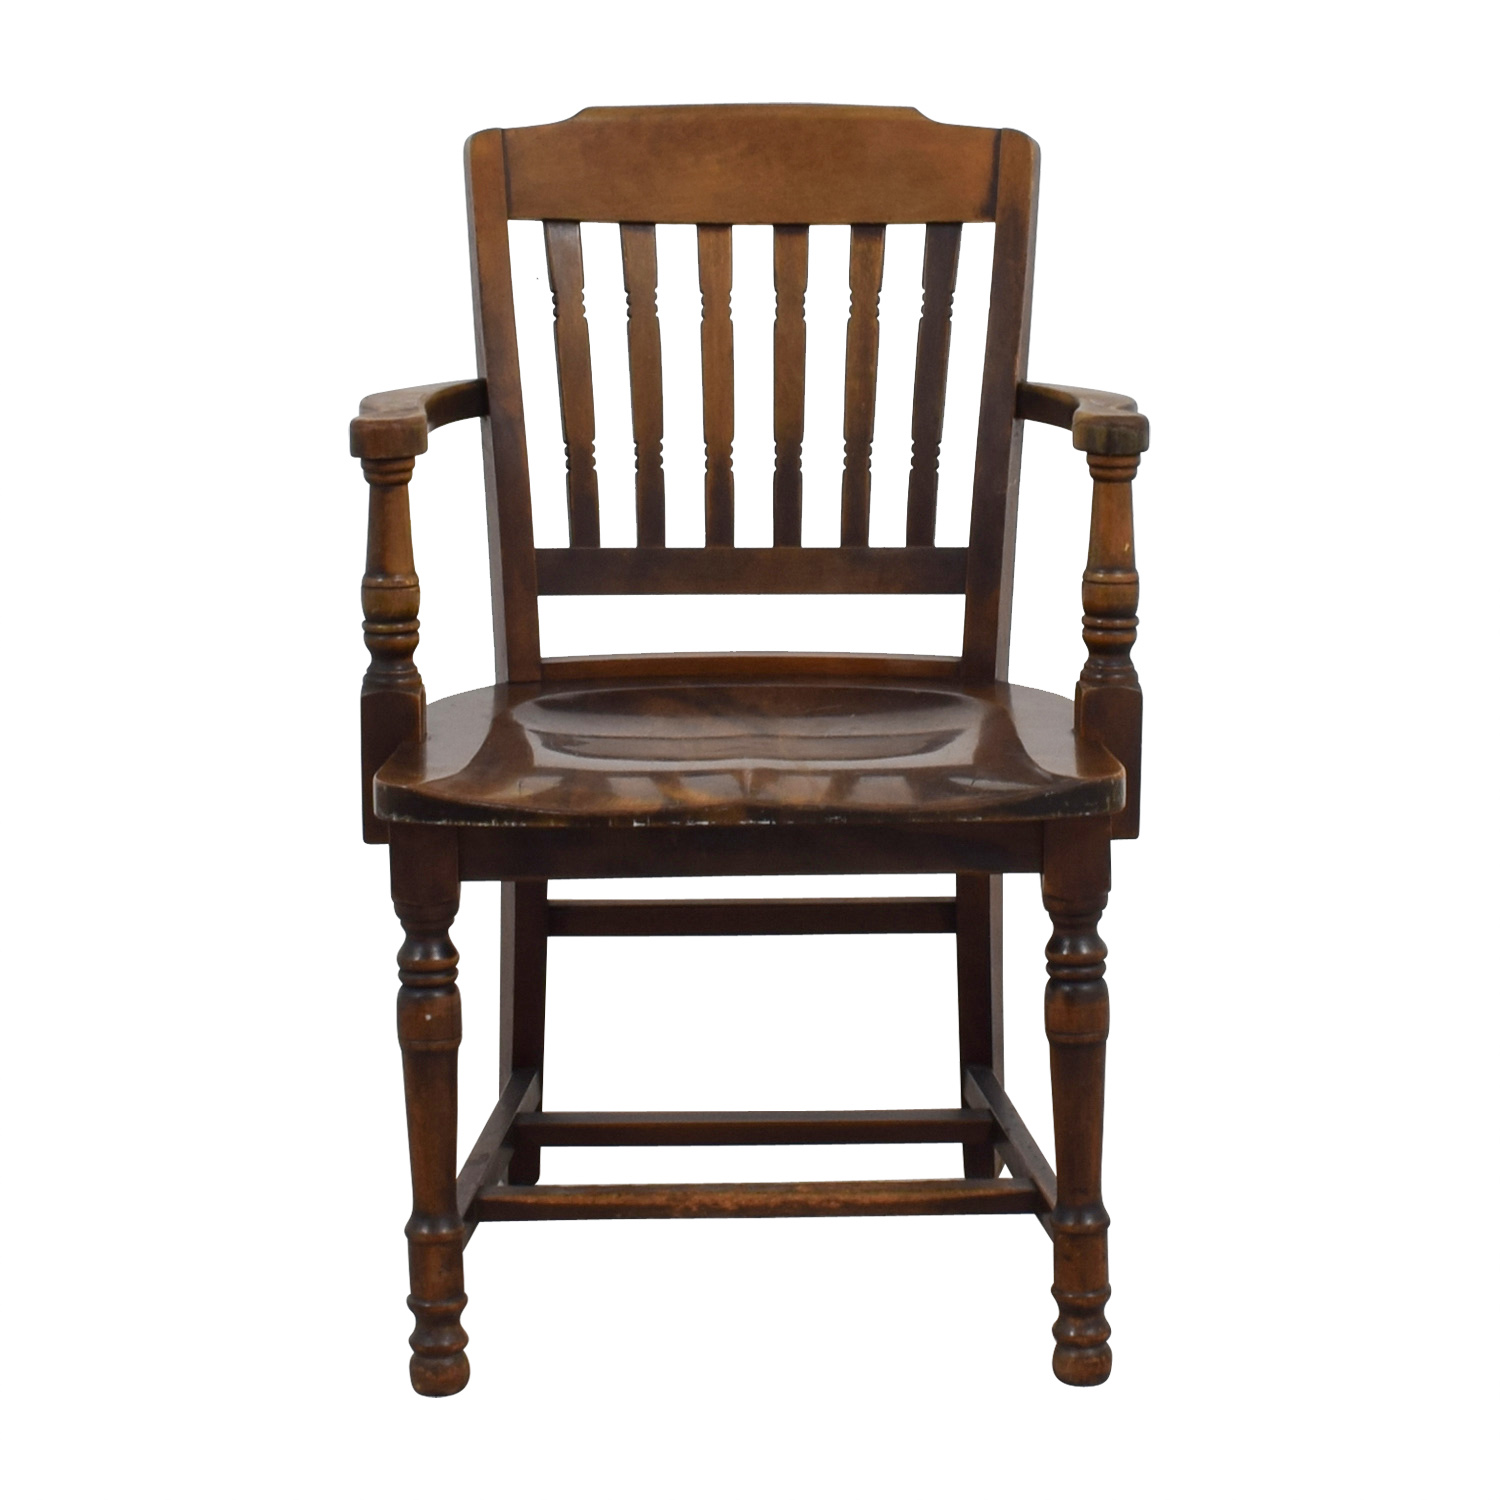 buy Antique Wood Spindel Chair online